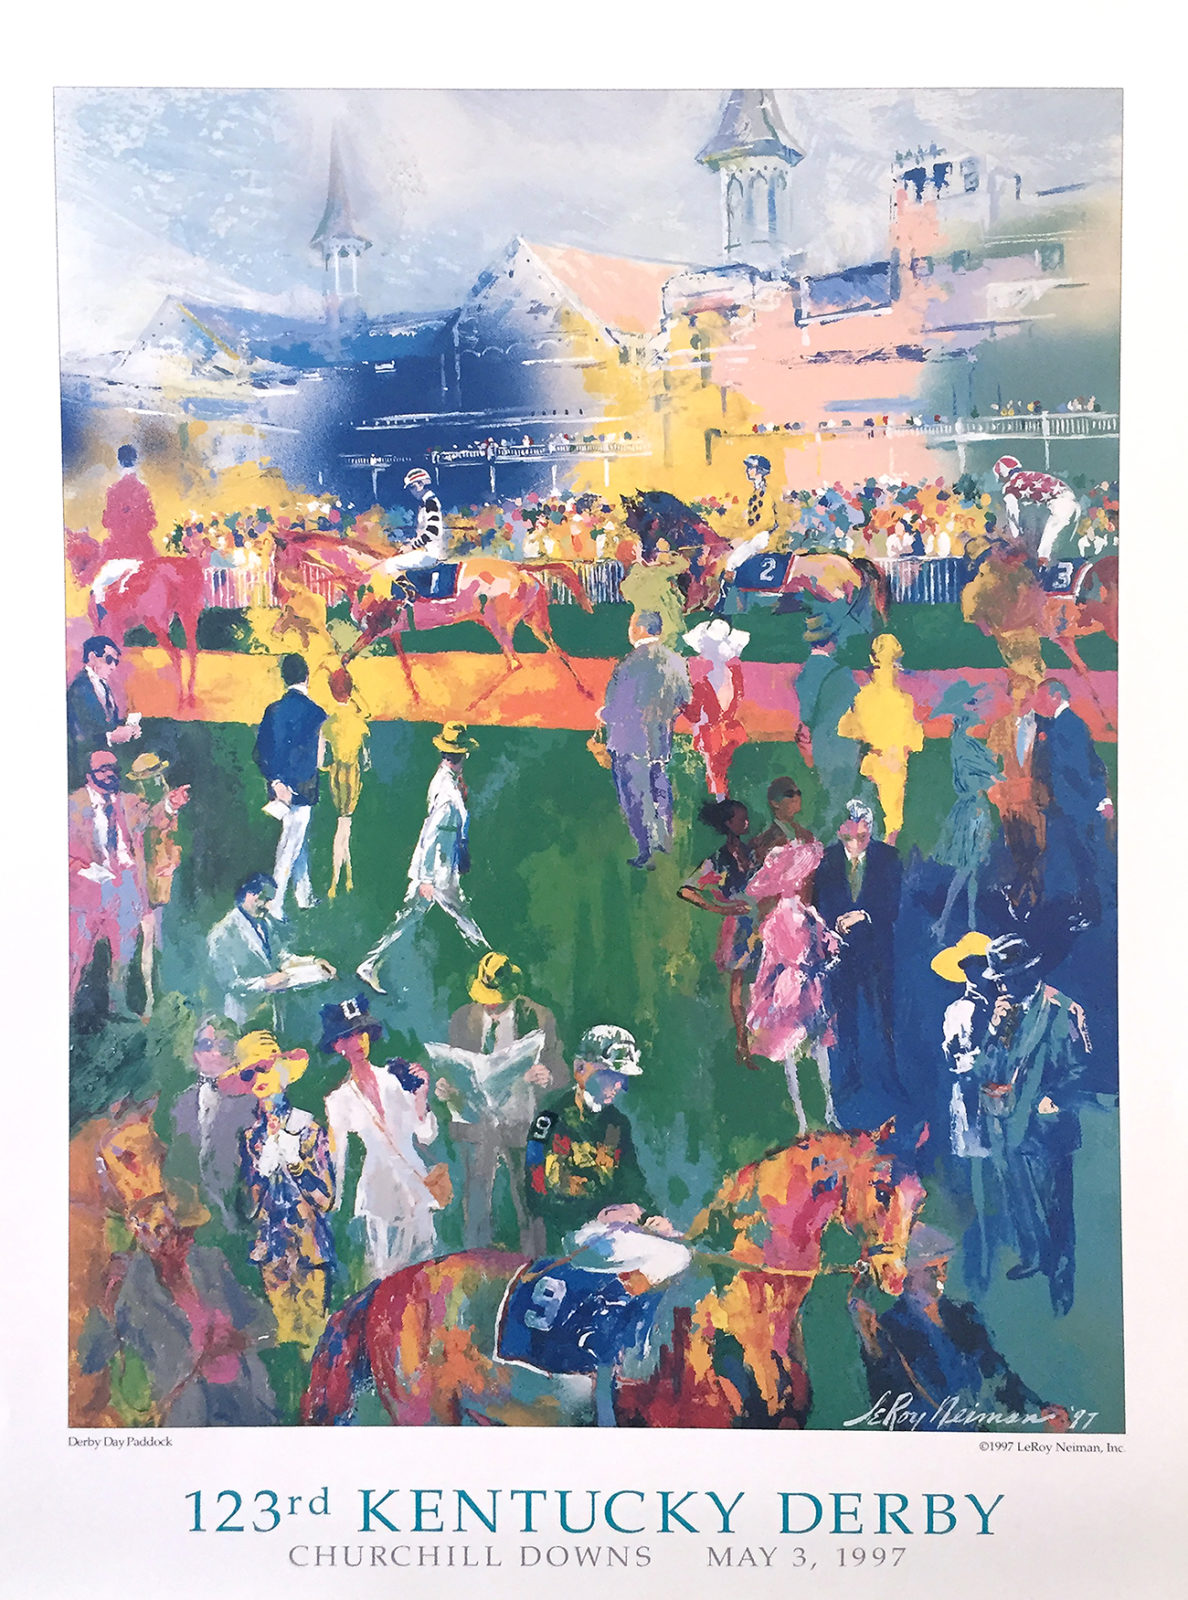 Derby Day Paddock poster